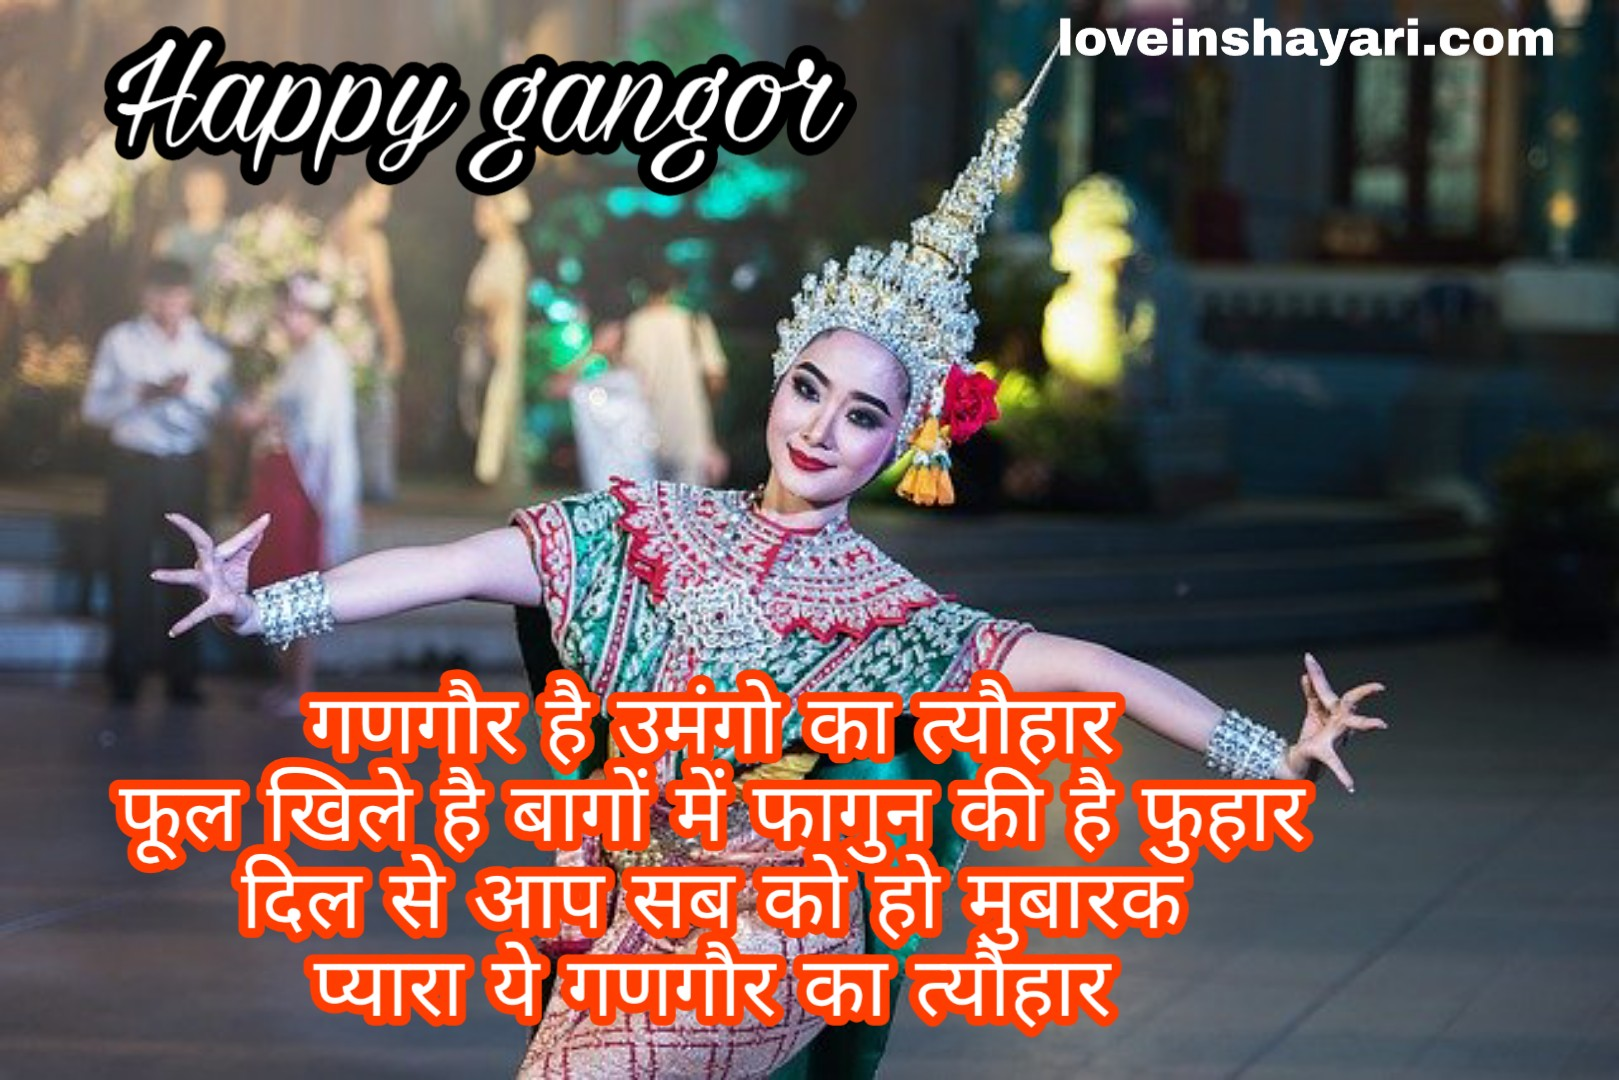 Gangor wishes shayari images message quotes 2020